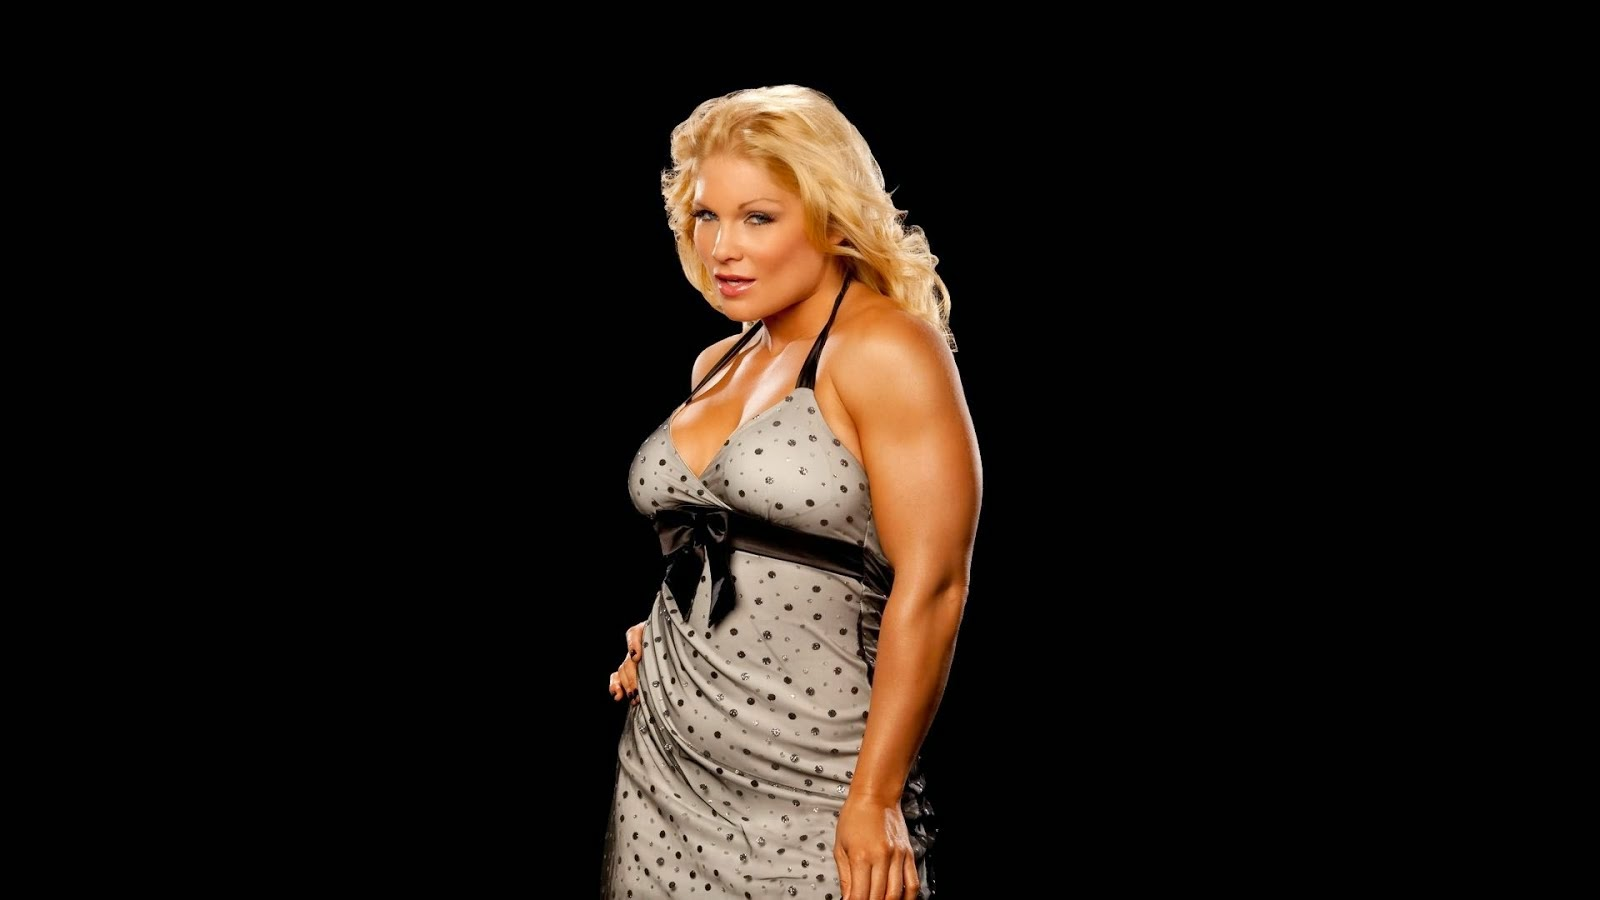 Beth phoenix wwe diva hd wallpapers hd wallpapers - Wwe divas wallpapers ...